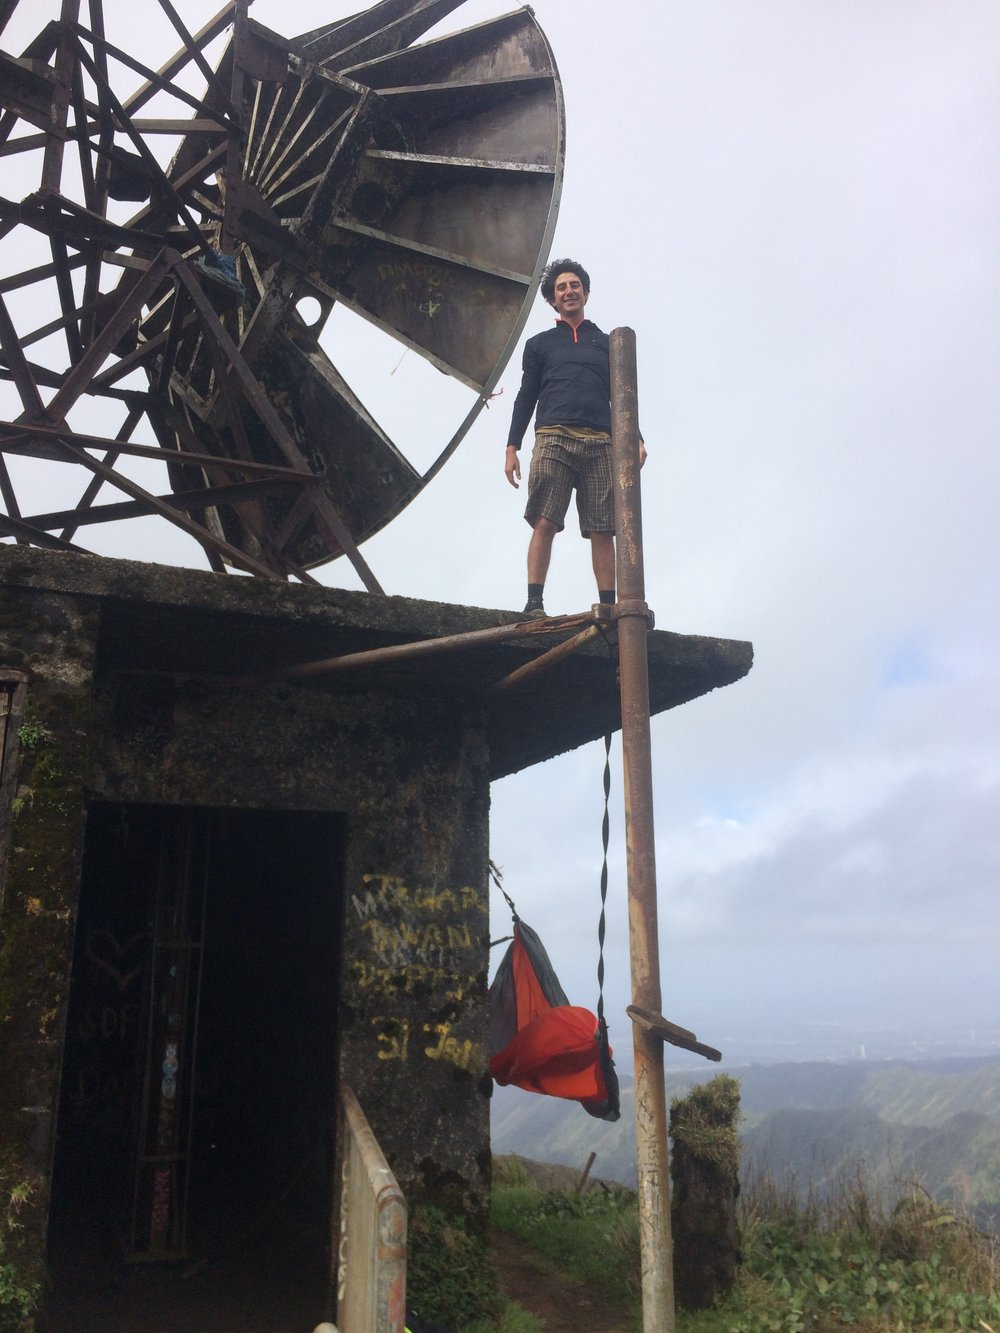 My brother climbing atop the satellite of the old military communications tower...because climbing 3,992 steps was not enough for him!